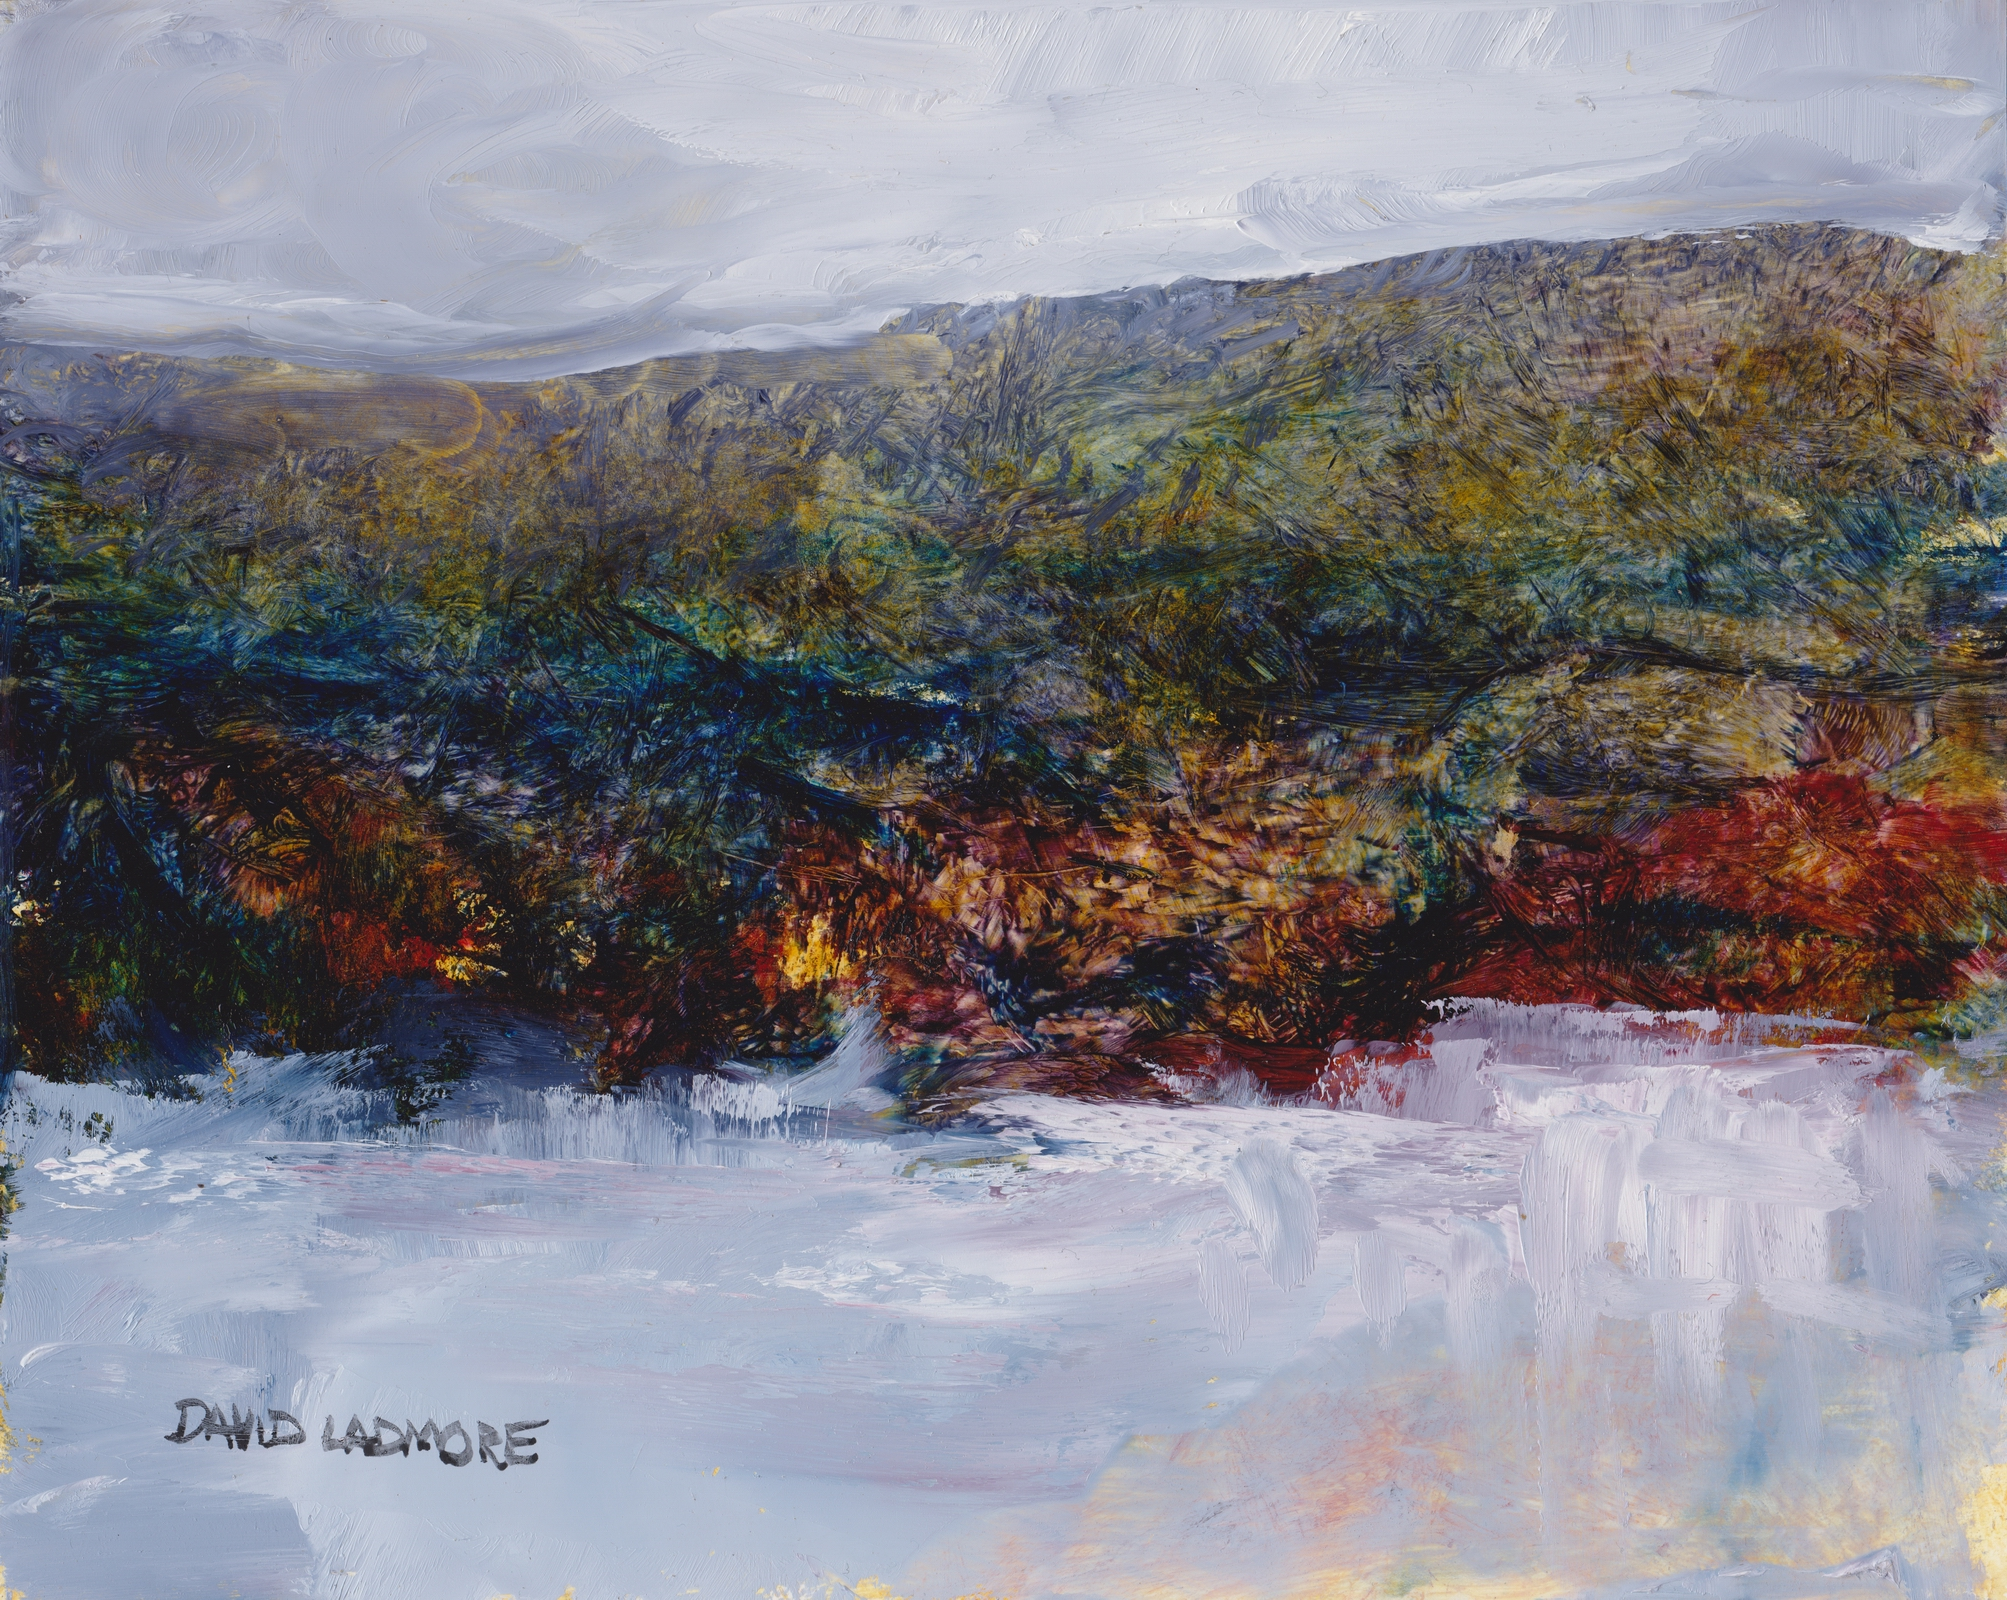 image of coastal landscape oil painting Elemental 40 by David Ladmore